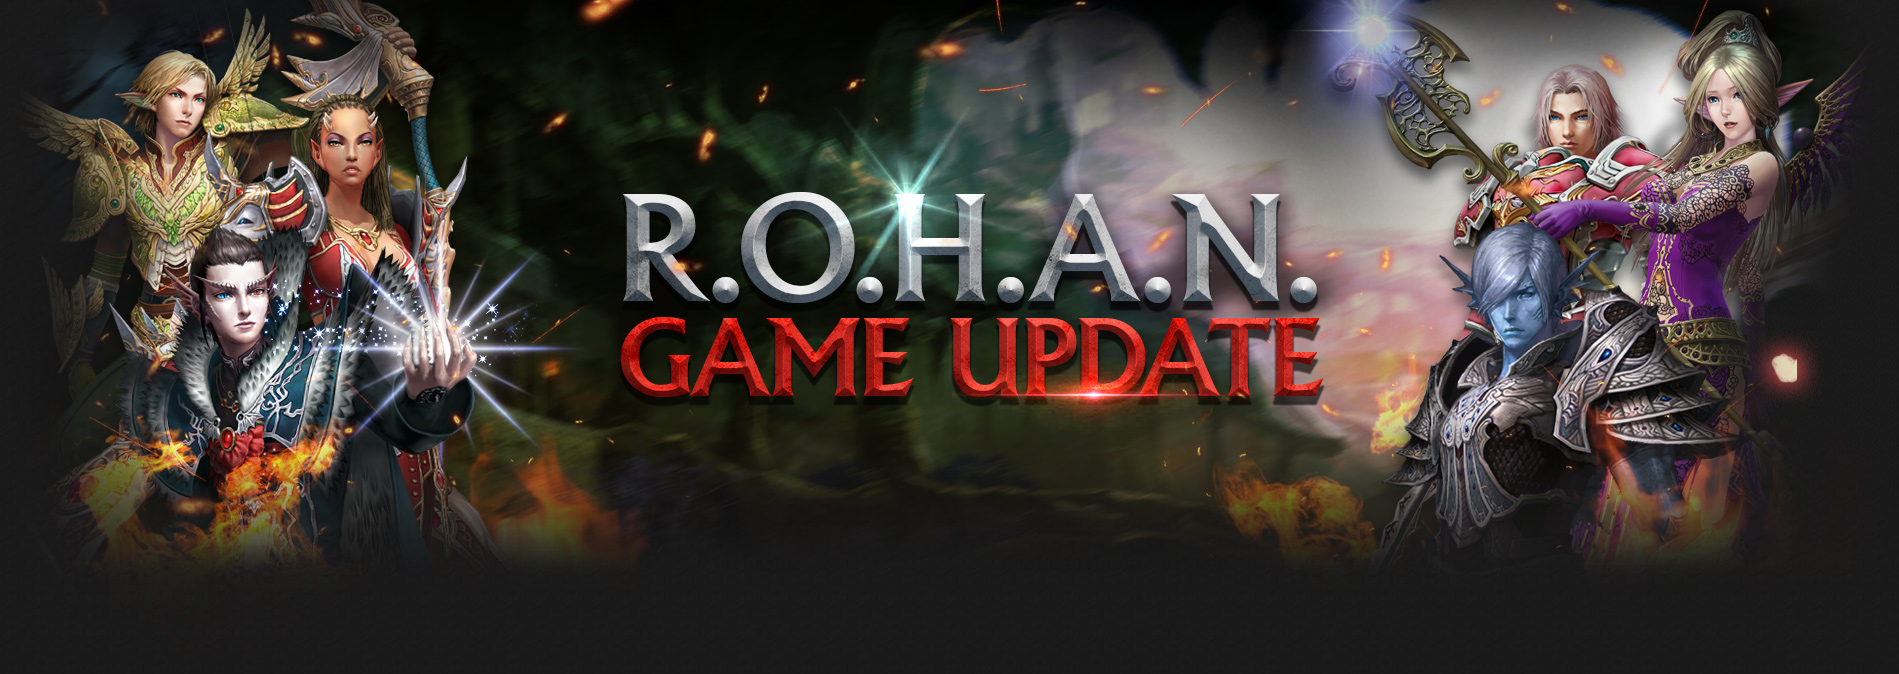 Rohan Game Update